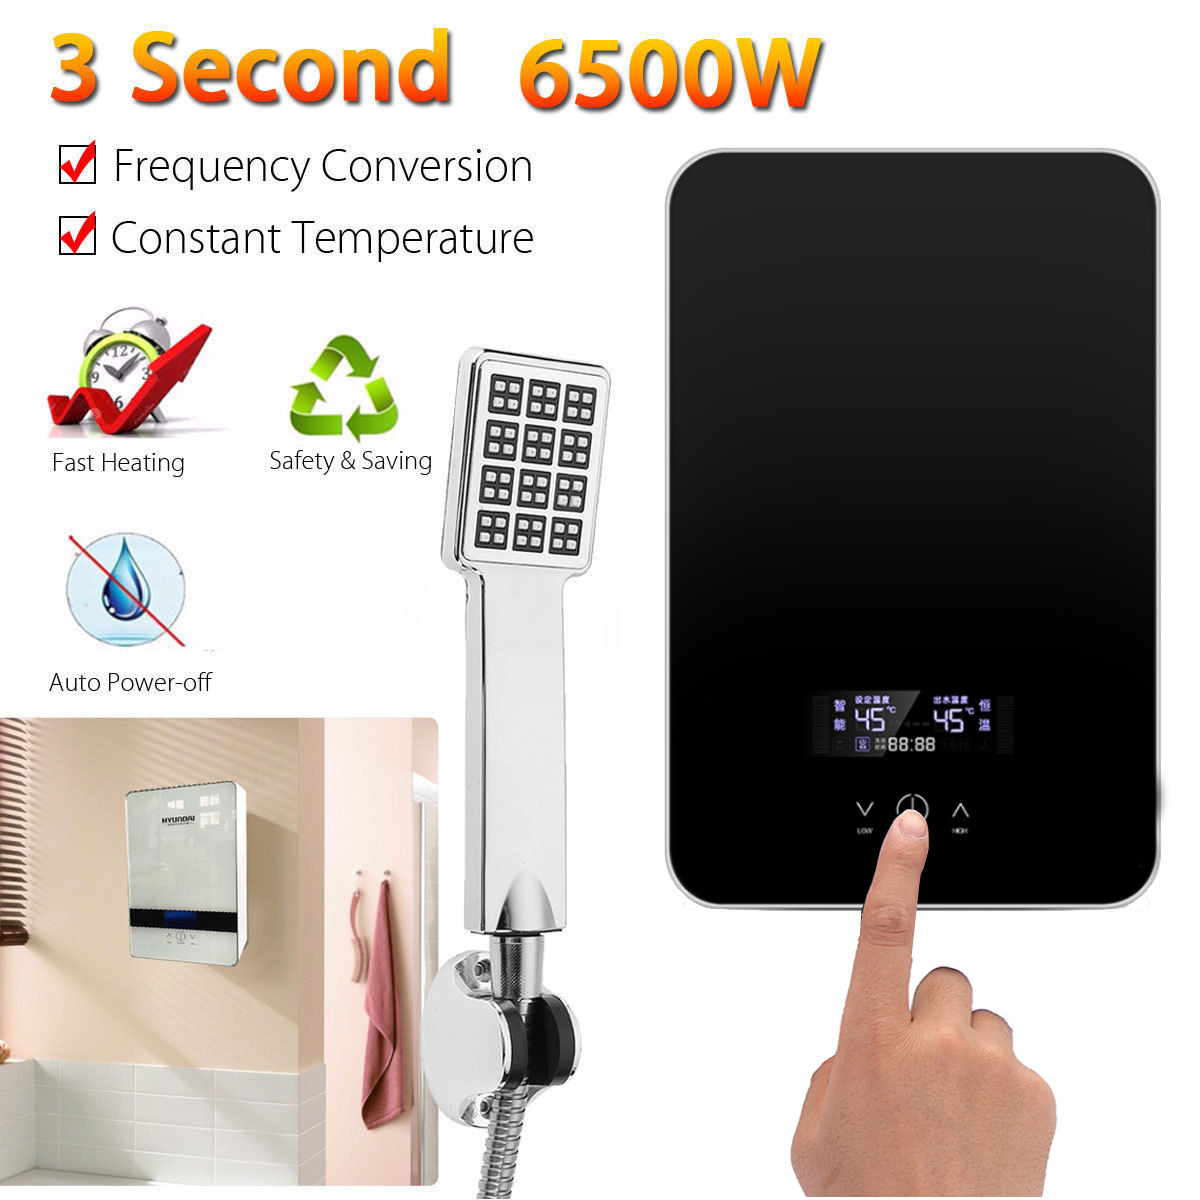 Hot Sales Electric Hot Water Heater Instant Heating 220V 6500W Overheating Protection Constant Temperature With Shower Nozzle